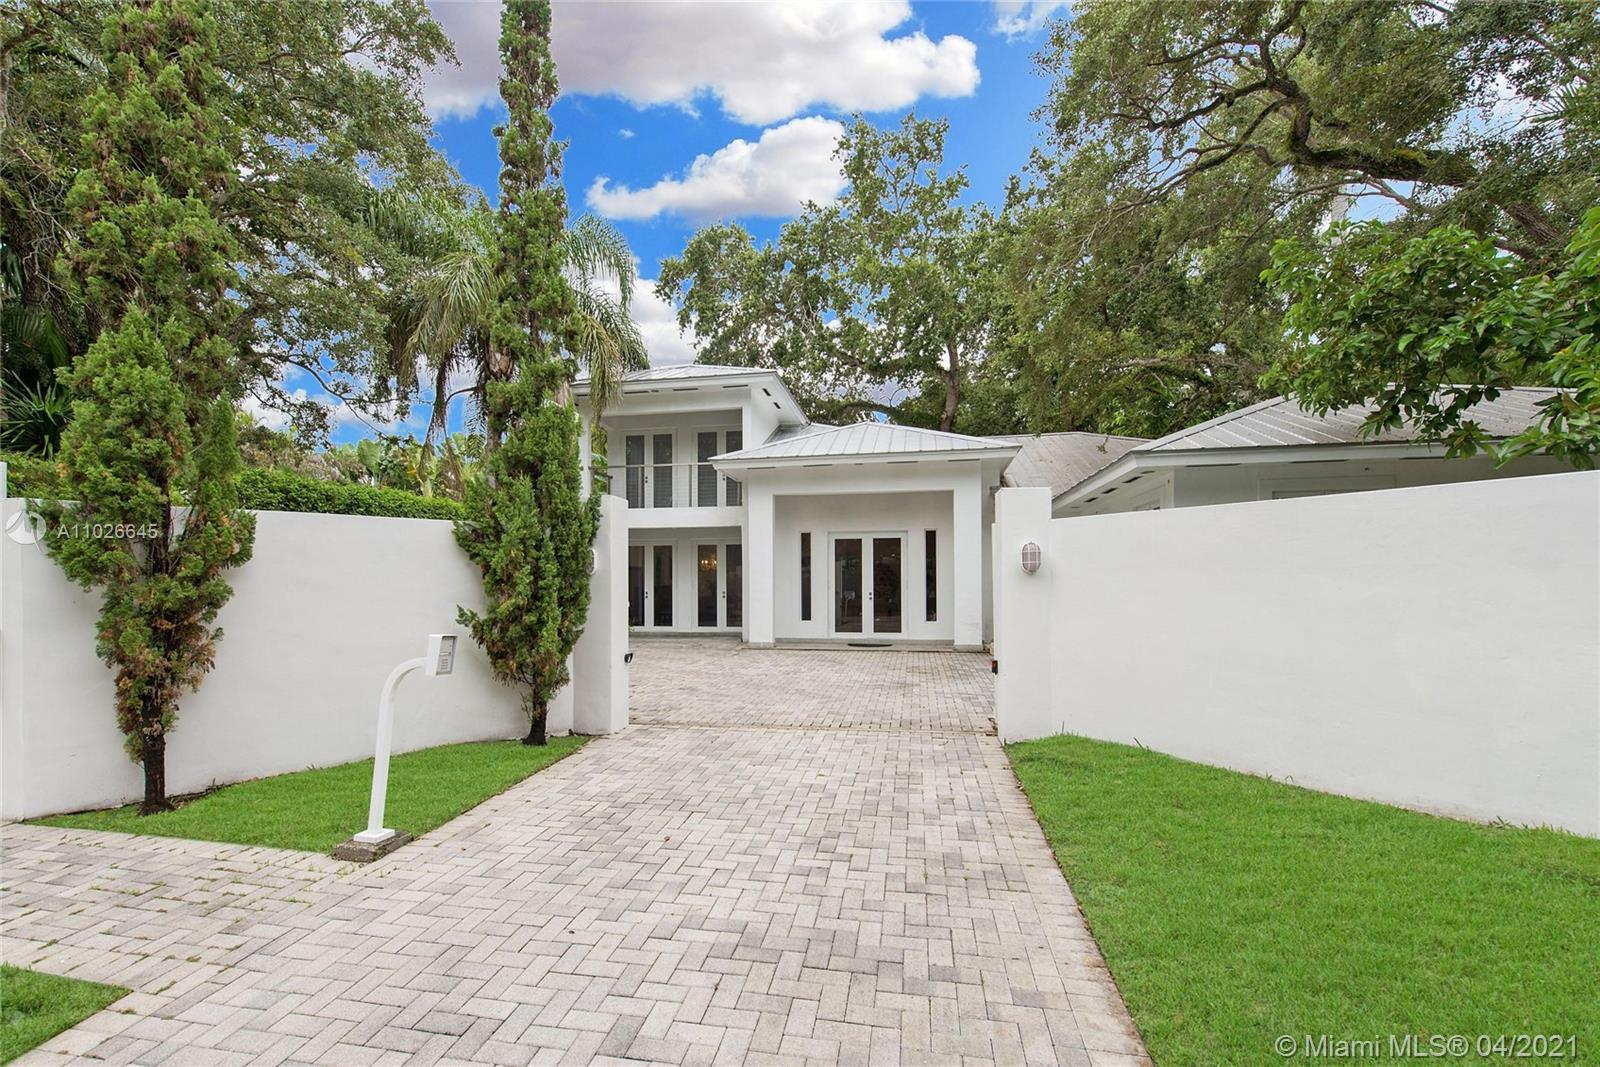 Lovely, walled & gated estate in lush South Coconut Grove. Custom built in 2004 by the current owner